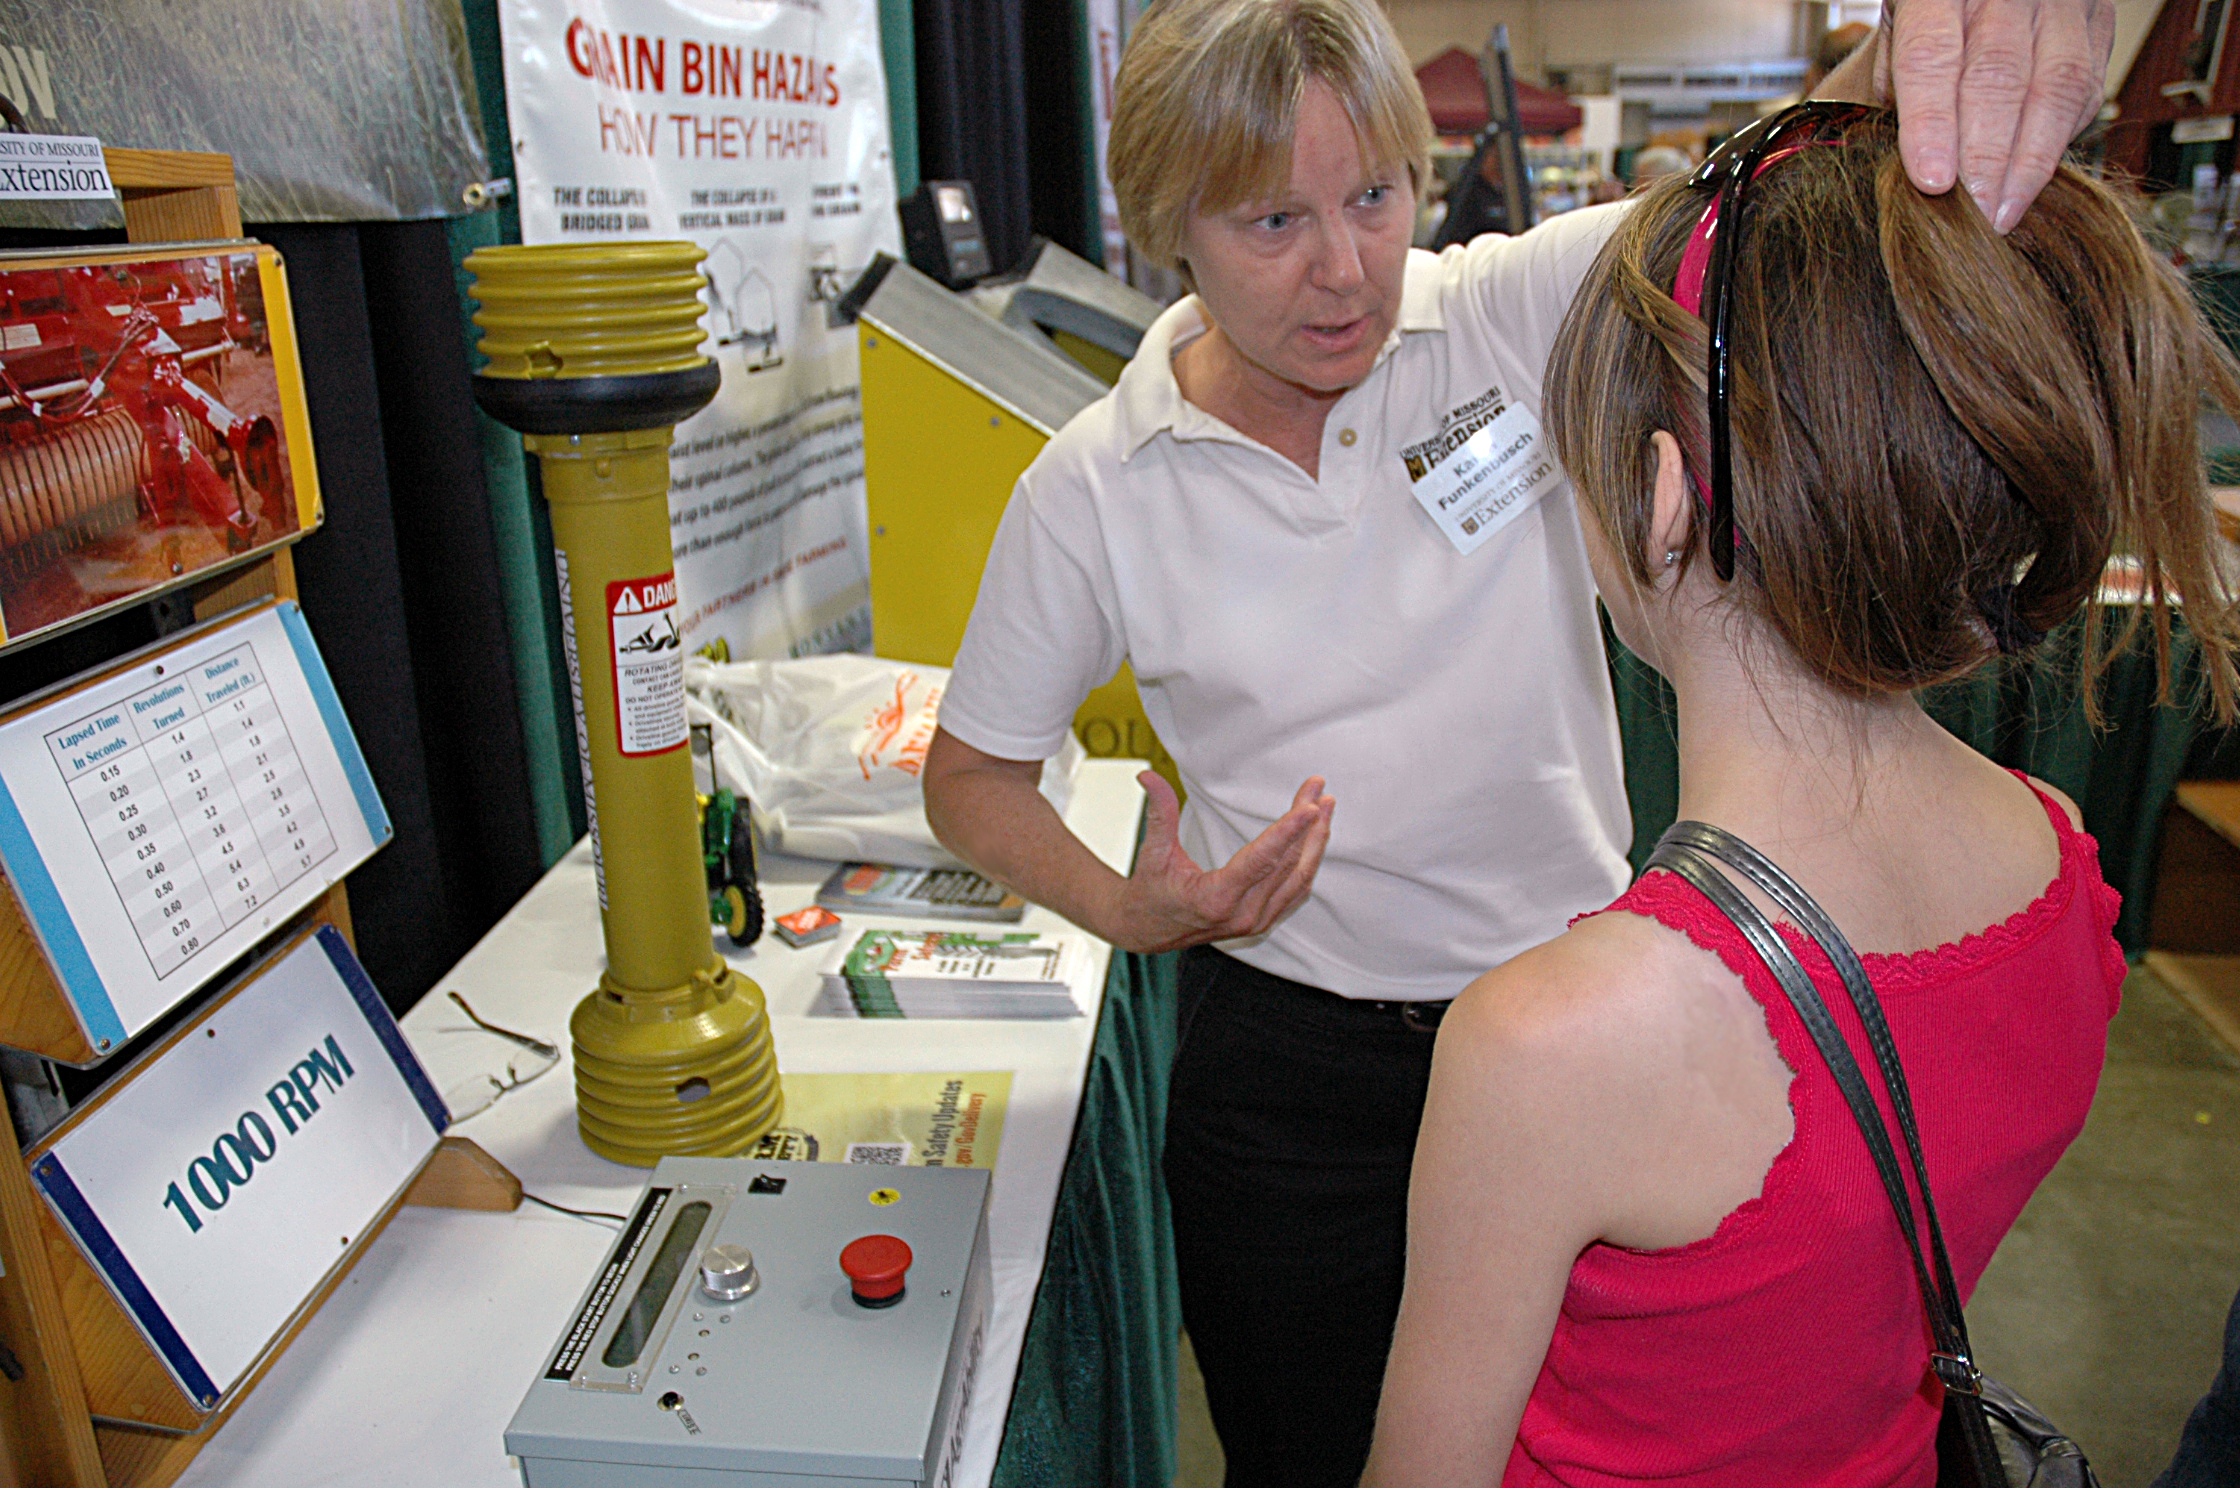 During the 2014 Missouri State Fair, MU Extension safety specialist Karen Funkenbusch tells a young woman that she should pull her long hair up and under a hat when working around farm equipment, especially power takeoff devices that can quickly grab hair